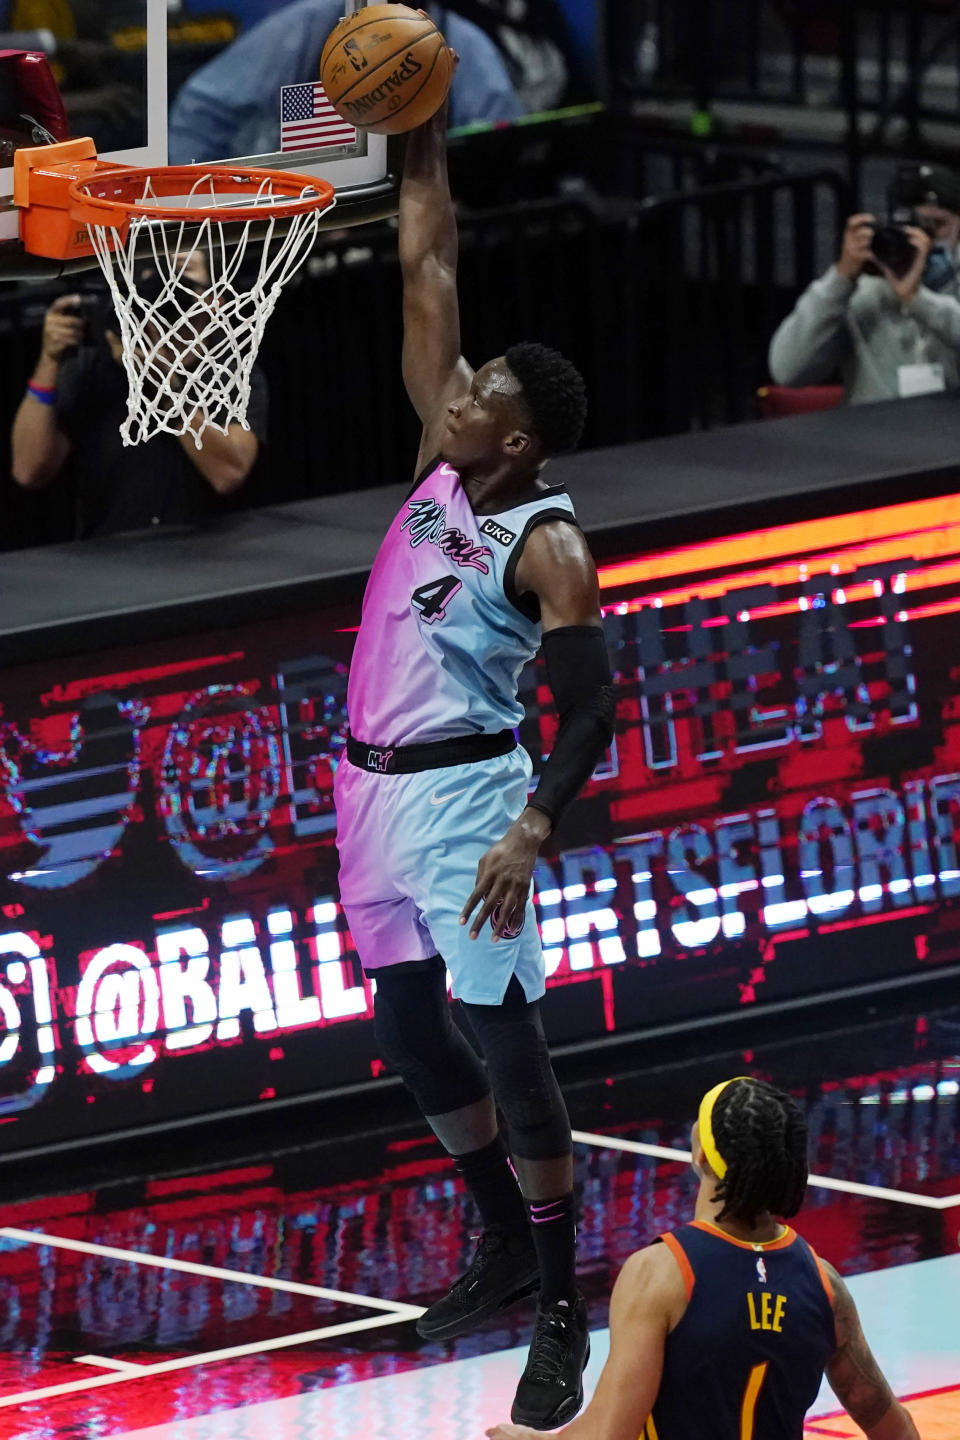 Miami Heat guard Victor Oladipo (4) dunks in front of Golden State Warriors guard Damion Lee (1) during the first half of an NBA basketball game Thursday, April 1, 2021, in Miami. (AP Photo/Marta Lavandier)